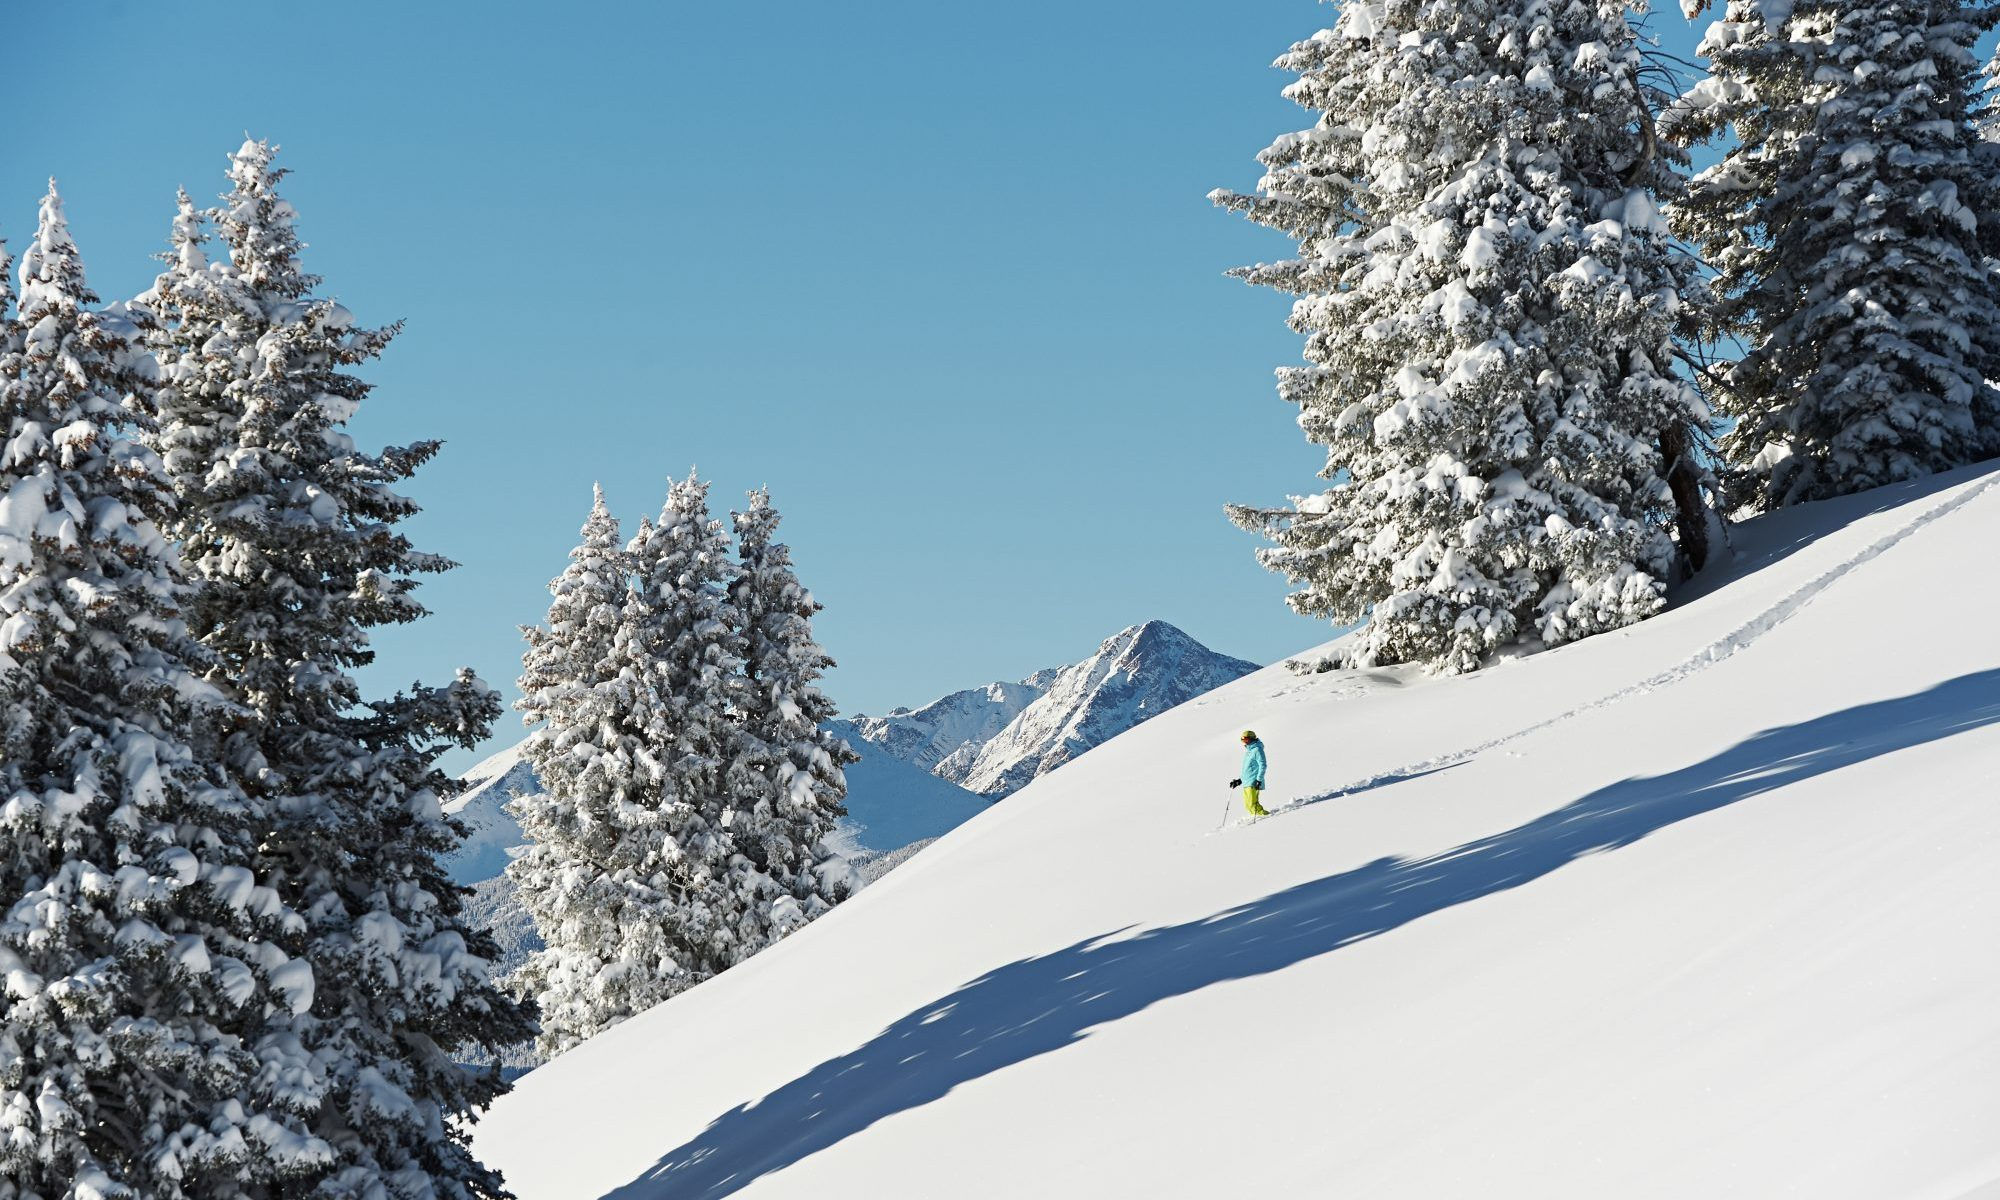 Back Bowls of Vail, Colorado. Photo: Jack Affleck - Vail Resorts. Epic Pass expans European Access in World-Class Resort in France and Italy: Les 3 Vallées in France and Skirama Dolomiti Adamello Brenta in Italy.